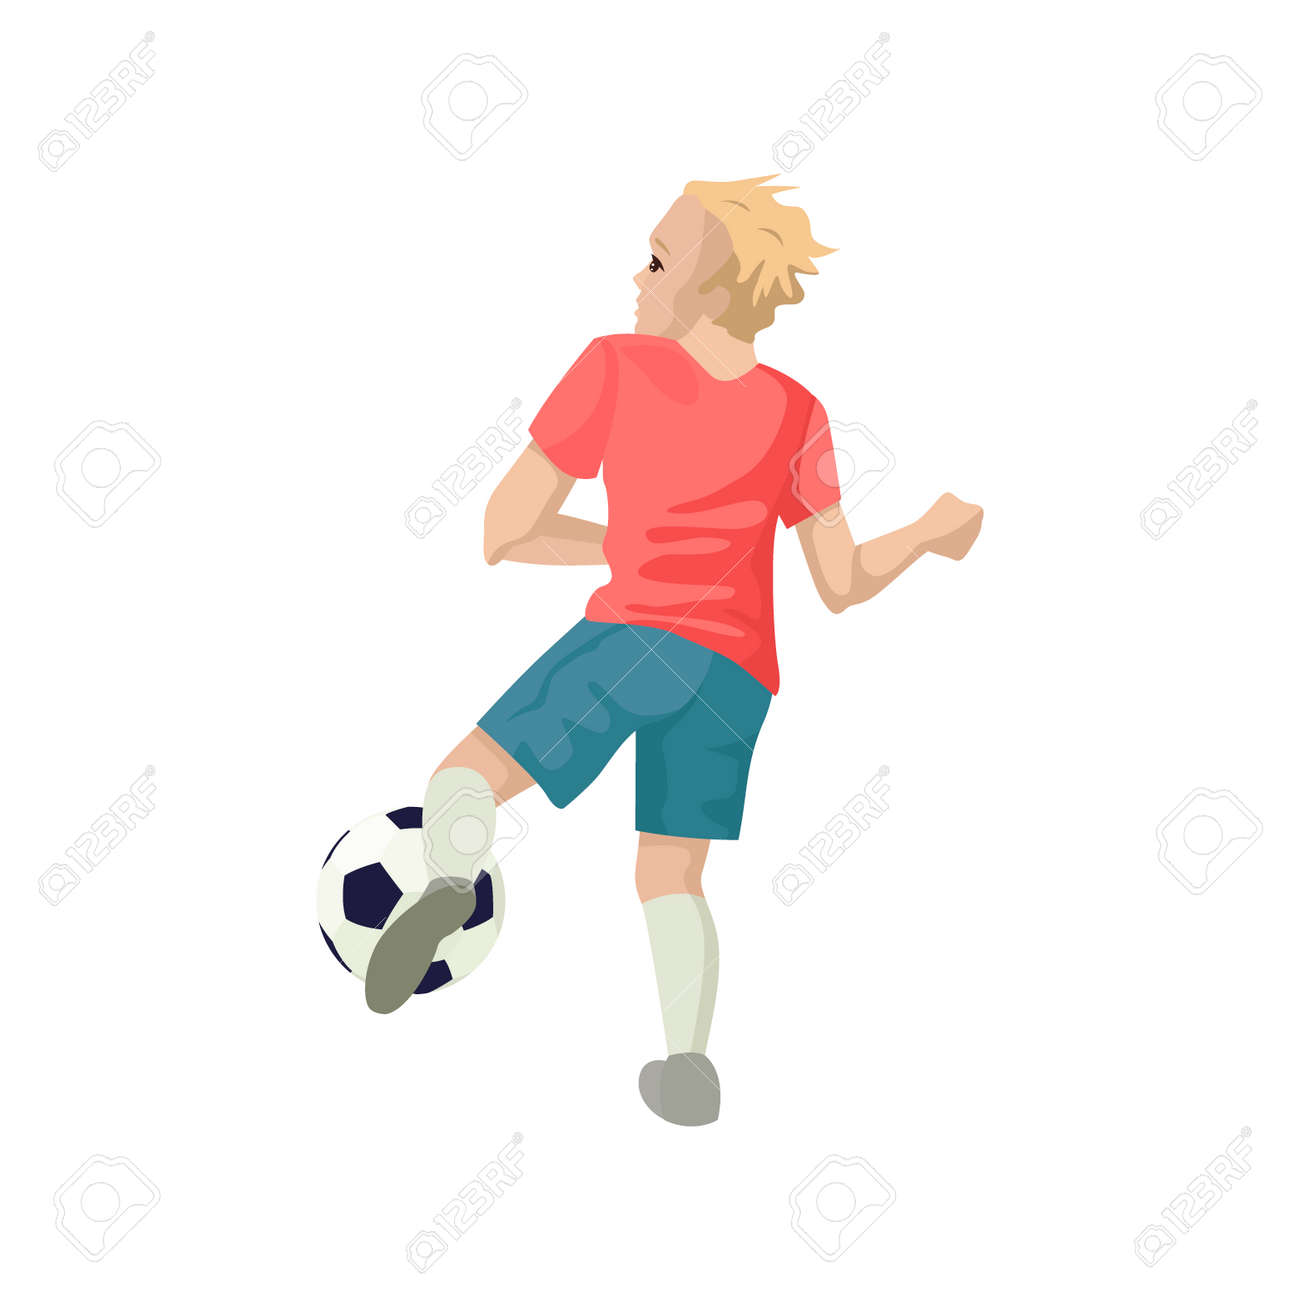 Football player kicks the ball. View from the back. Vector illustration of character. - 140000381